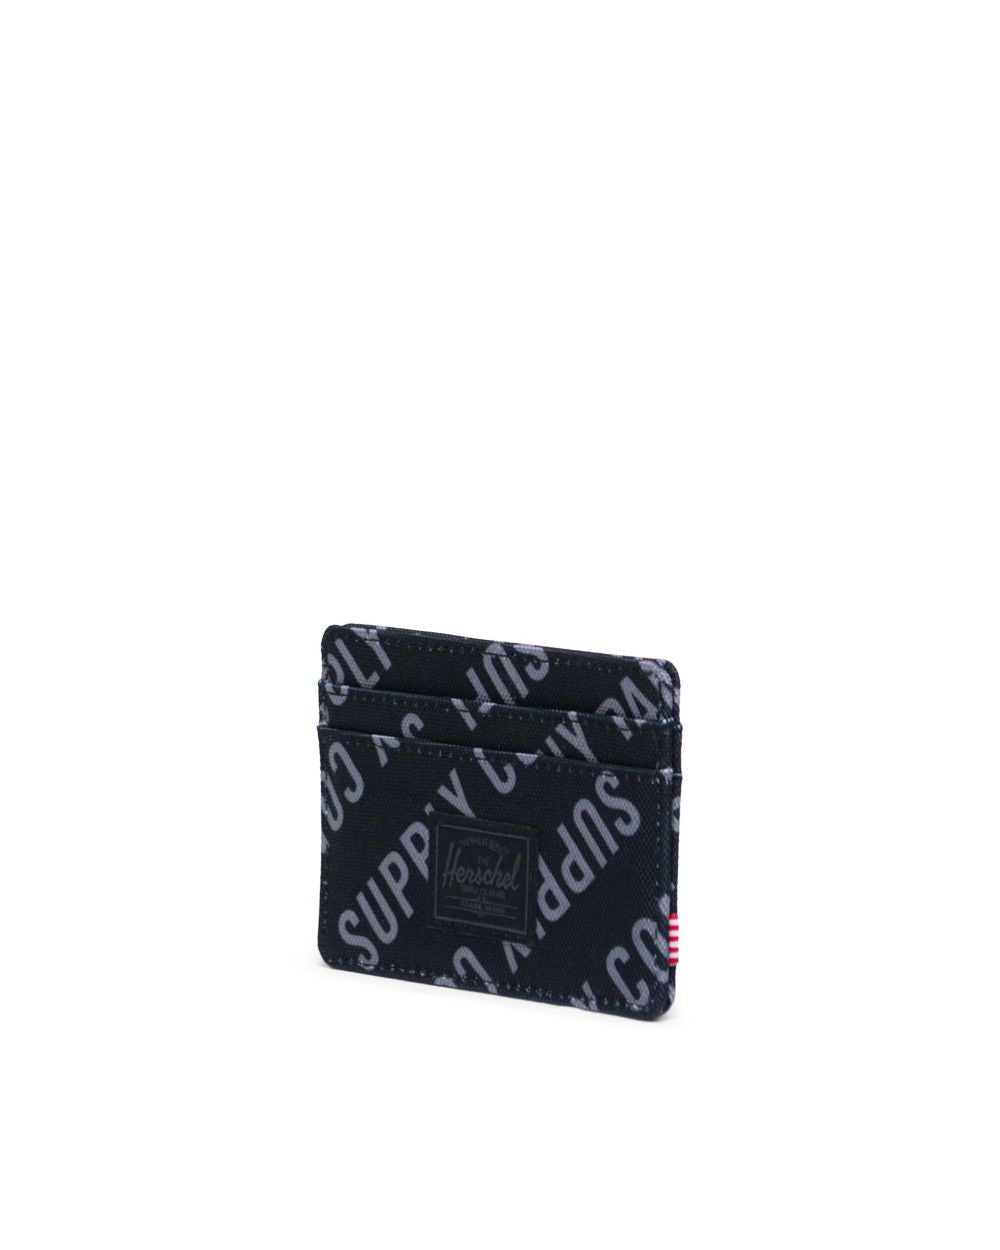 Charlie Wallet (Roll Call Black/Sharkskin)